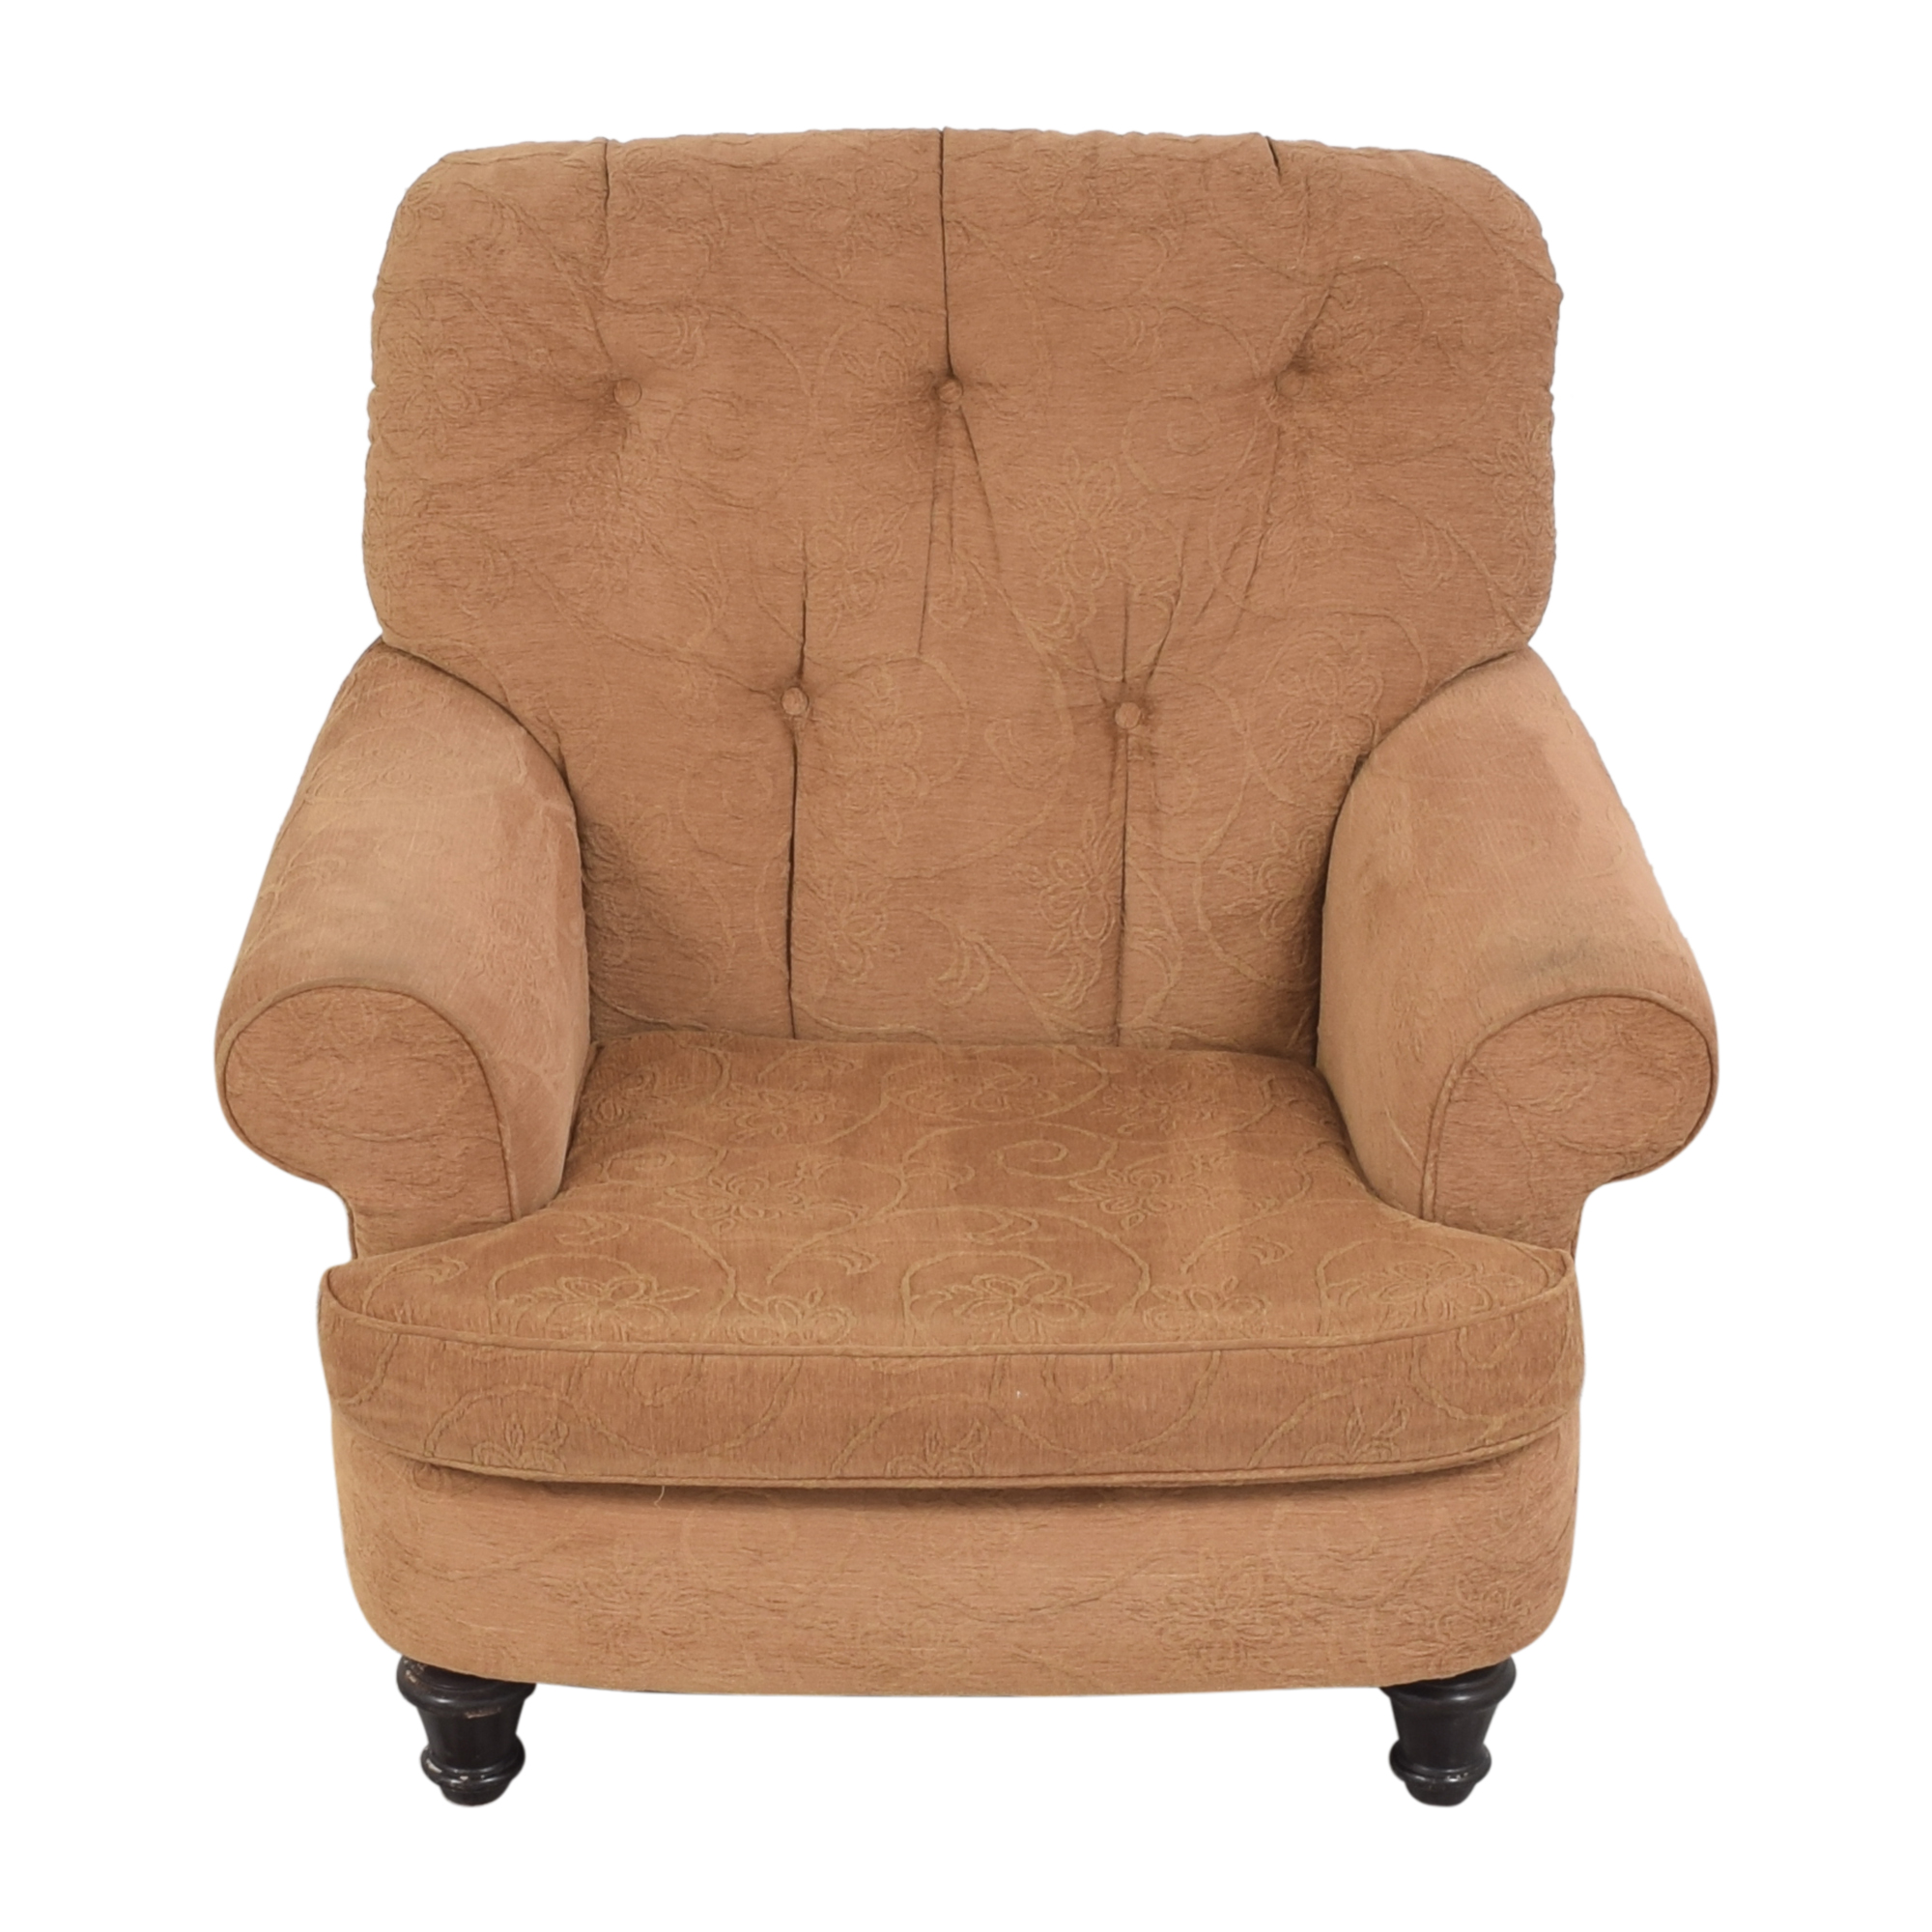 Oversized Roll Arm Accent Chair / Accent Chairs